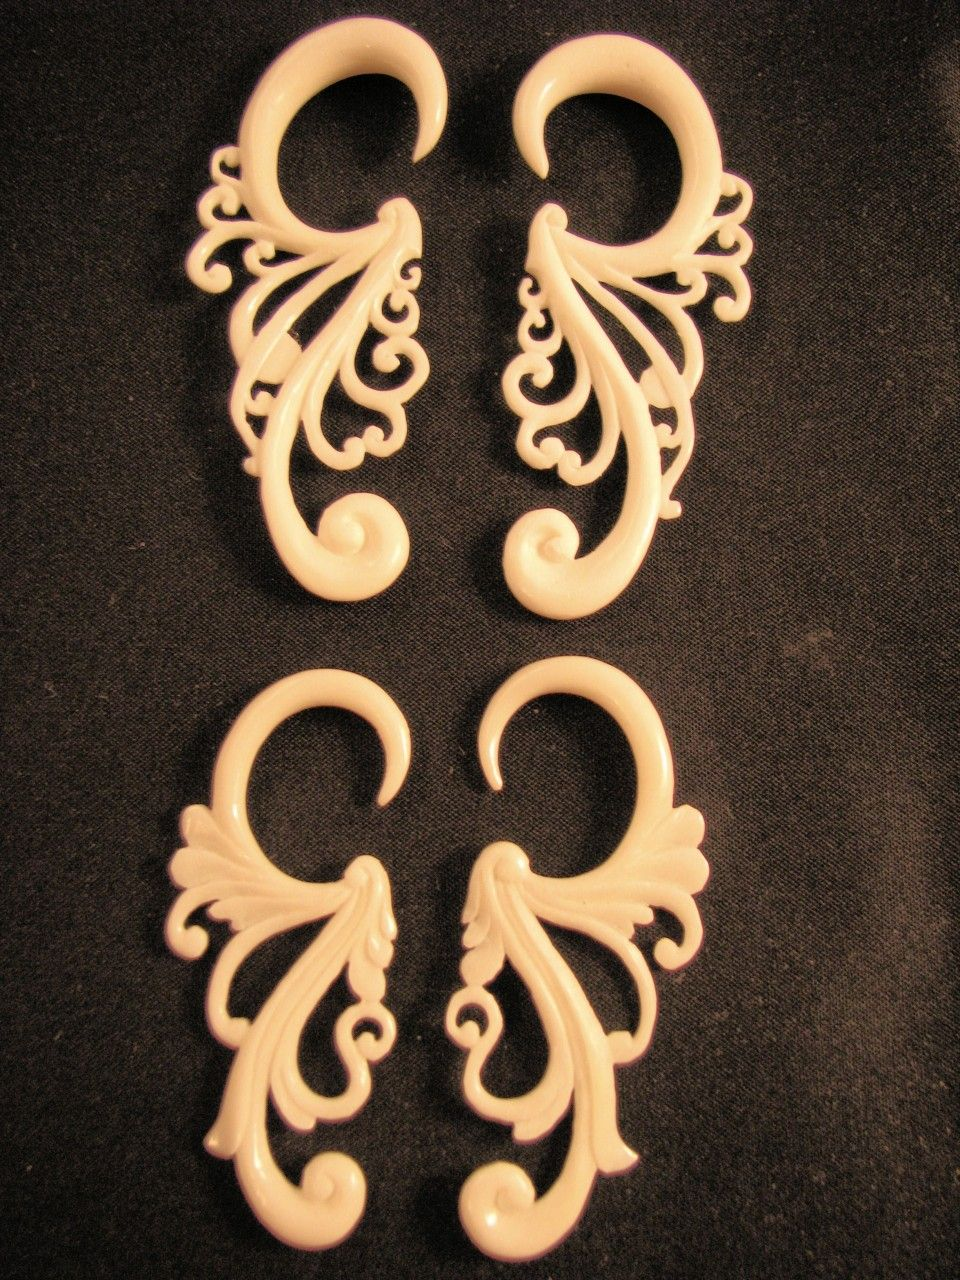 Cascade Organic Bone Spiral Ear Gauges 12g 0g Body Jewelry Gauged Earrings